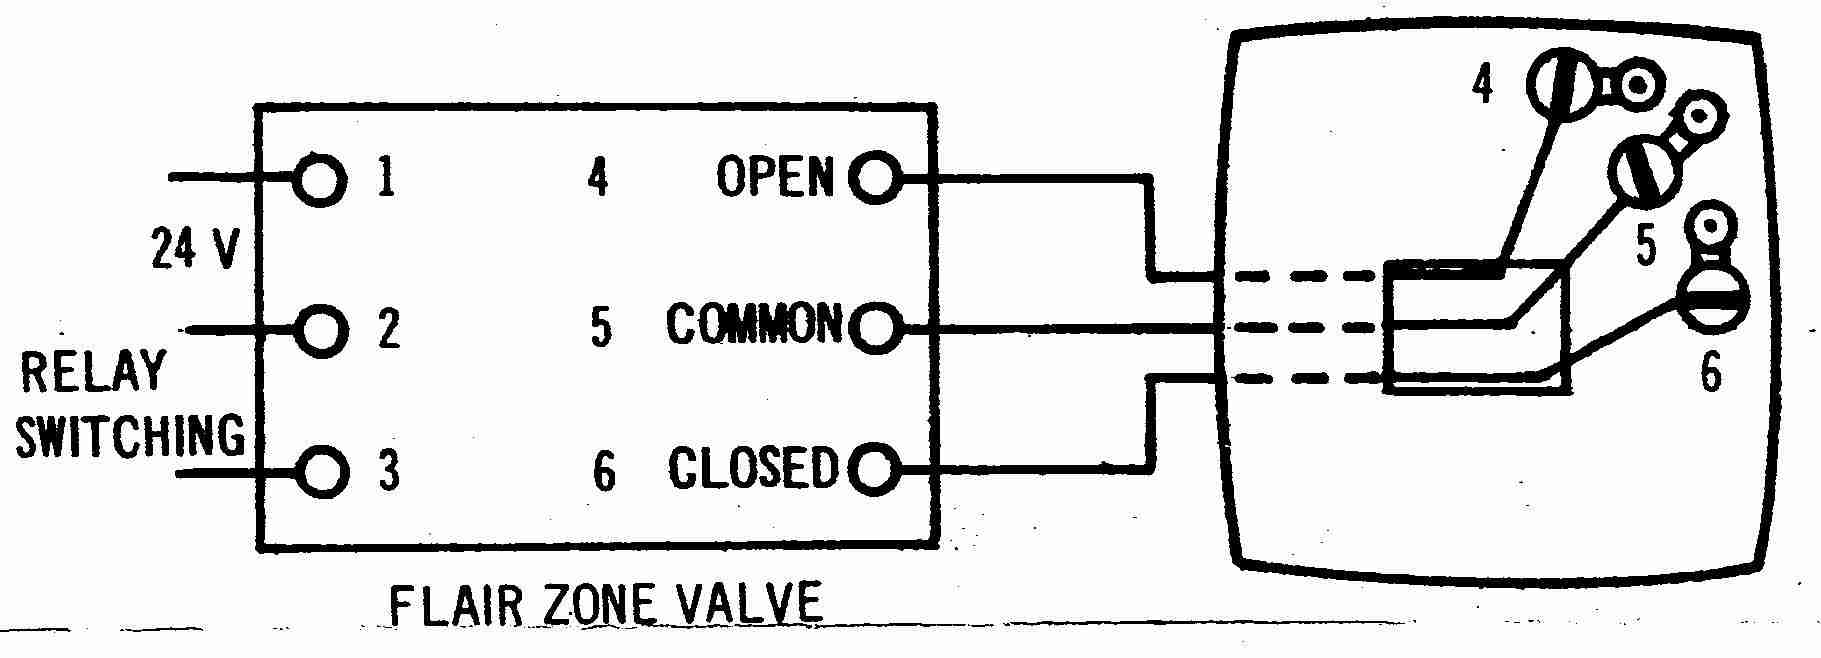 Zone Valve Wiring Installation Instructions Guide To Heating Diagram As Well 3 Pin Plug On How Wire A Flair Thermostat Controlling